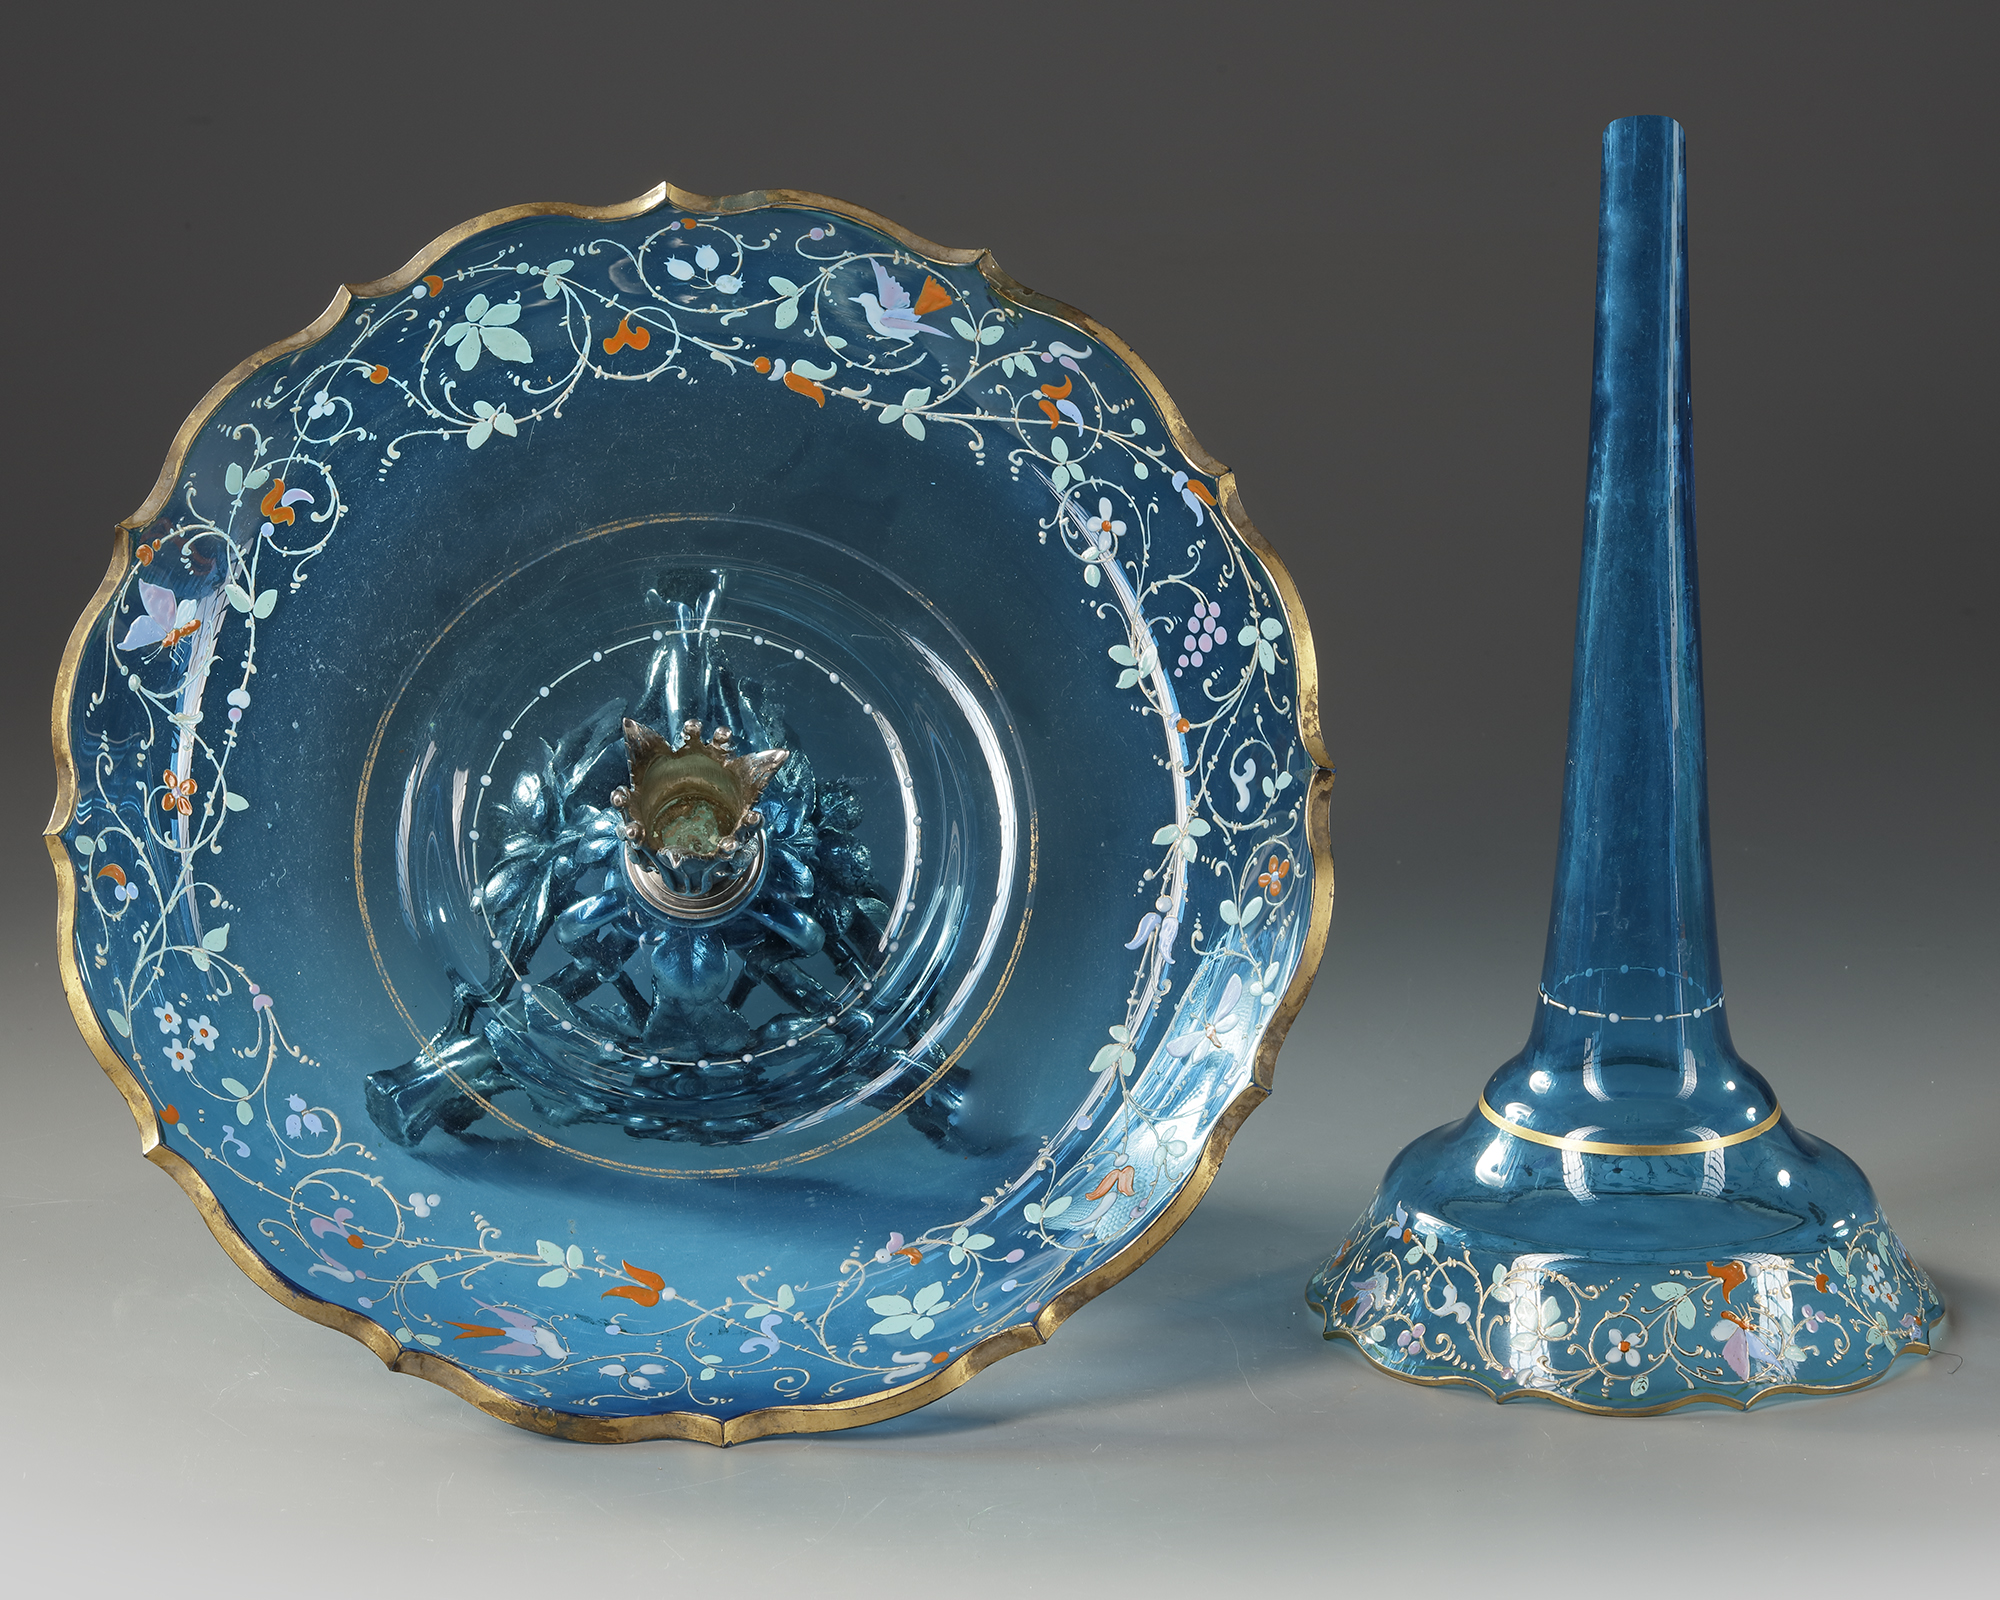 A SOLIFLORE CENTERPIECE, CIRCA 1870 - Image 4 of 4